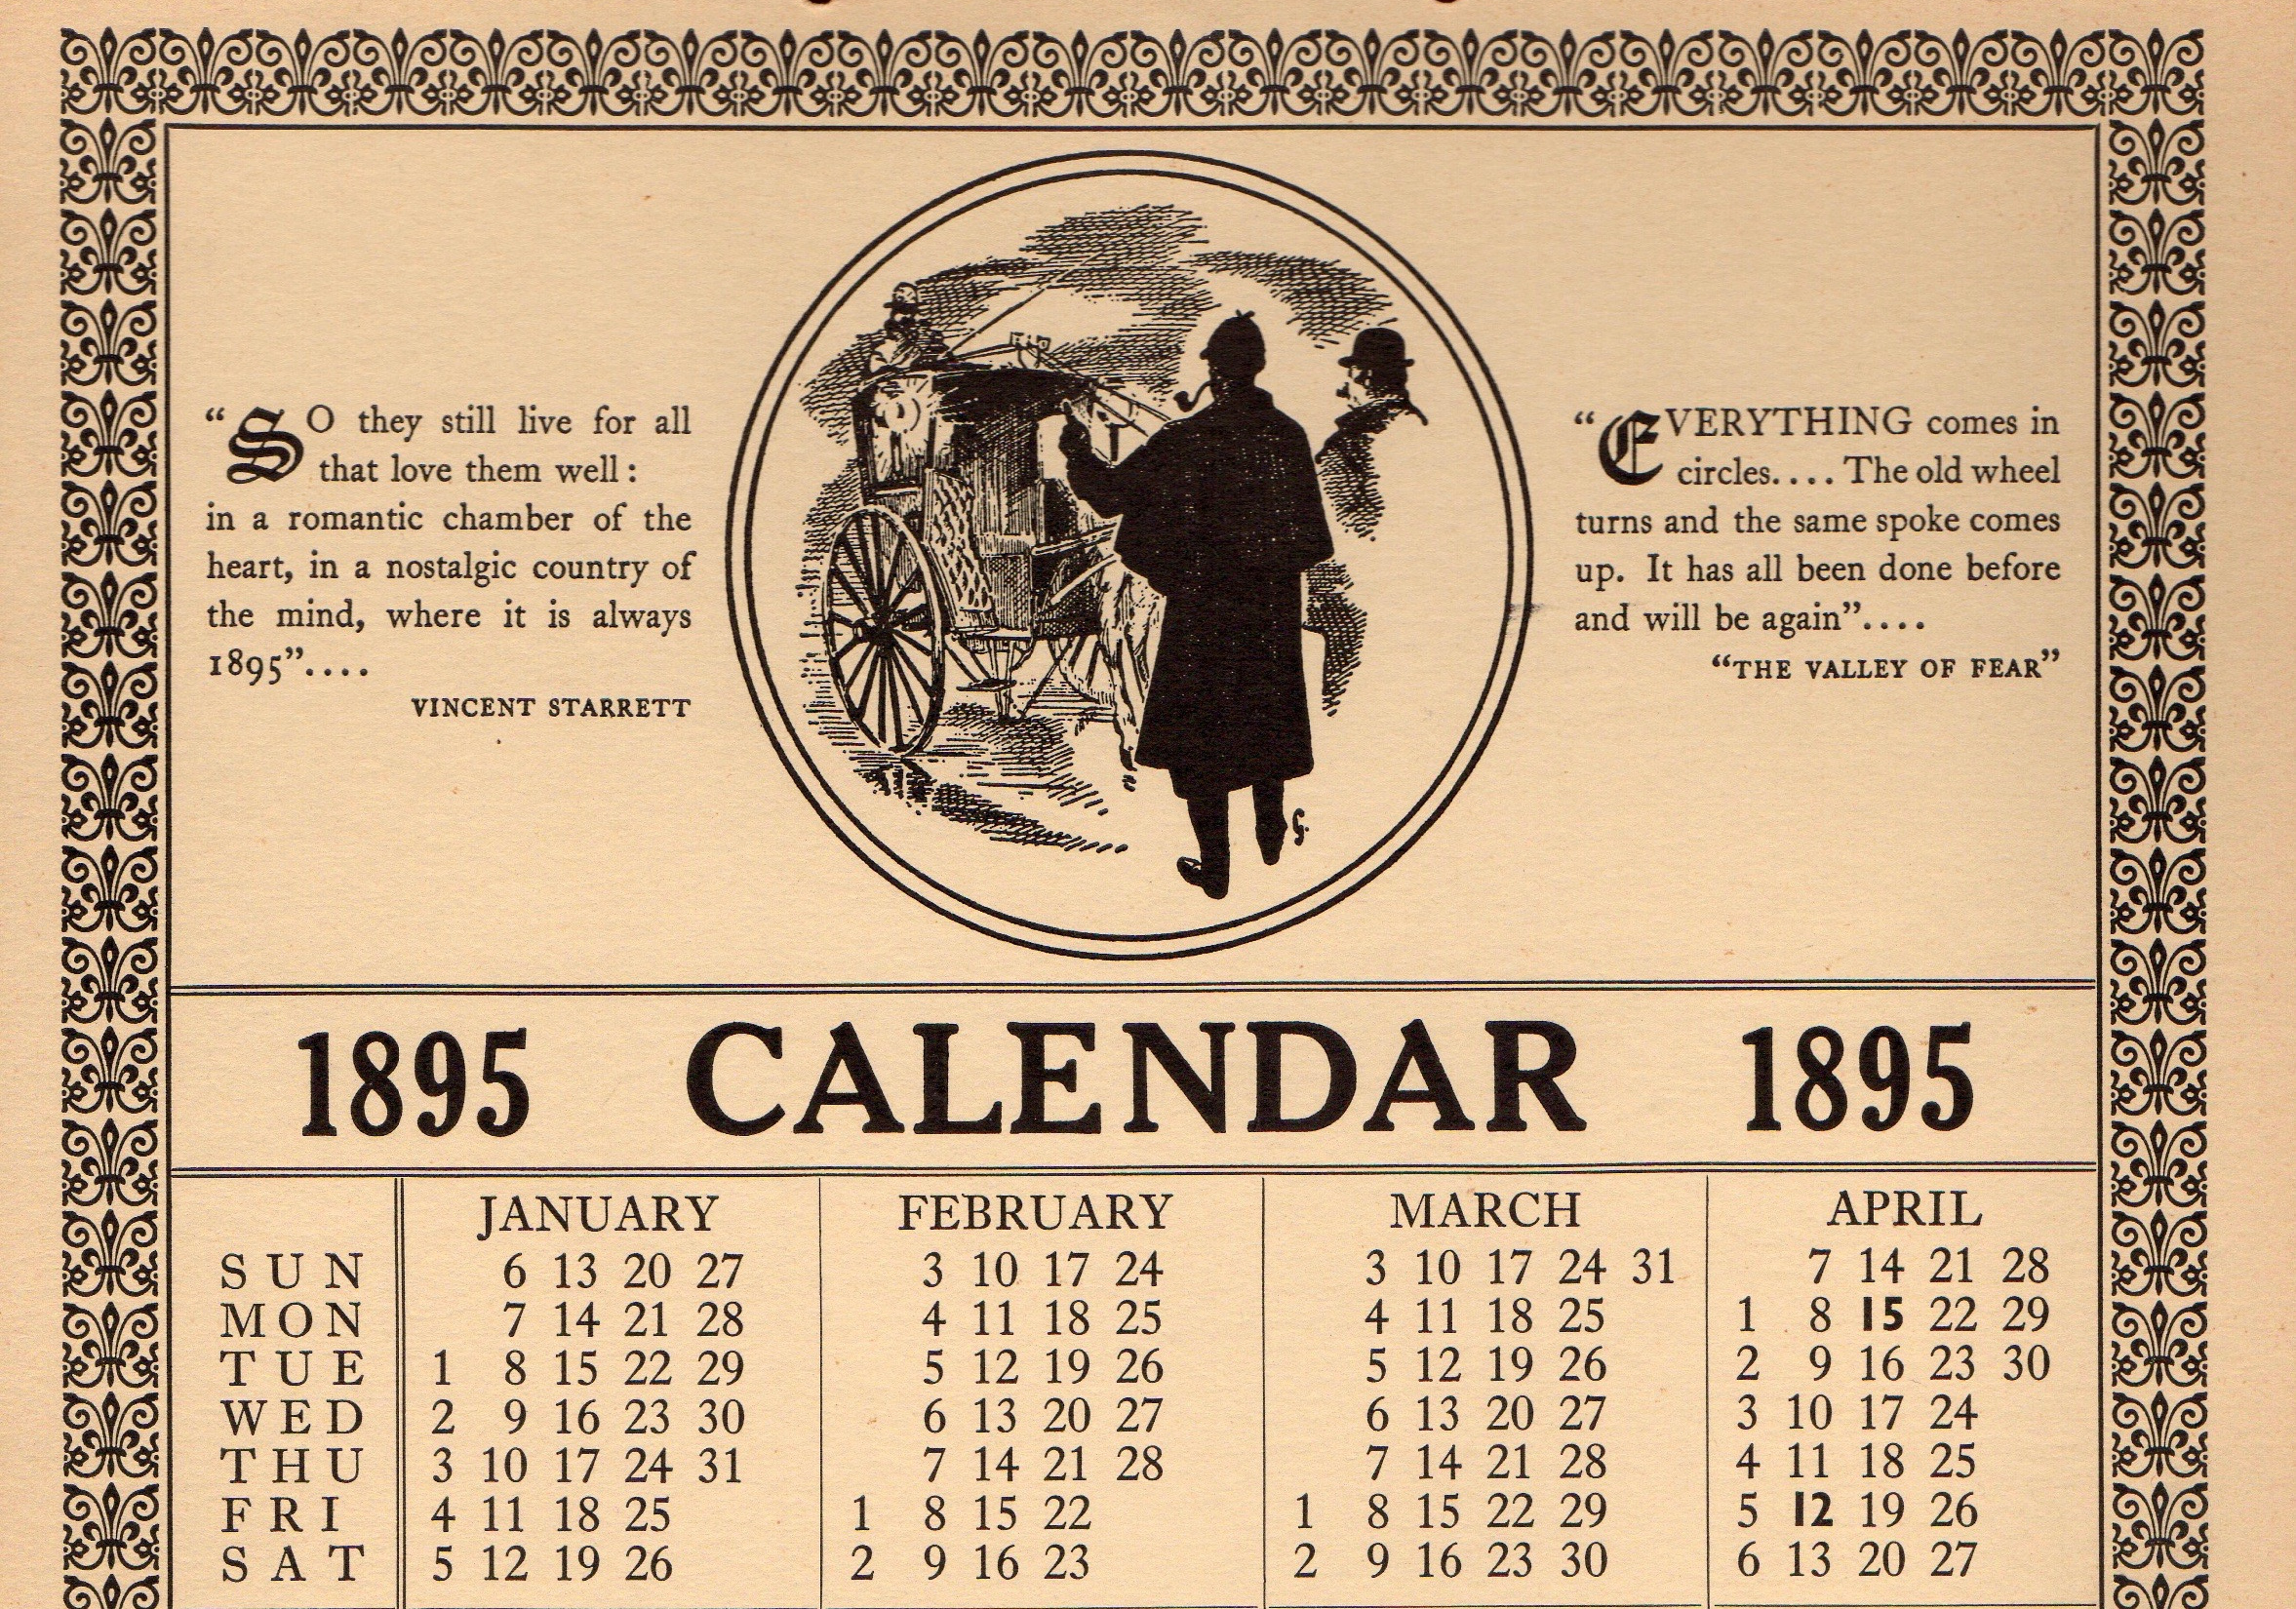 A calendar printed by the Sherlock Holmes Society of London in 1963, an analog year to 1895. 2019, the year this was posted, is another 1895 analog.